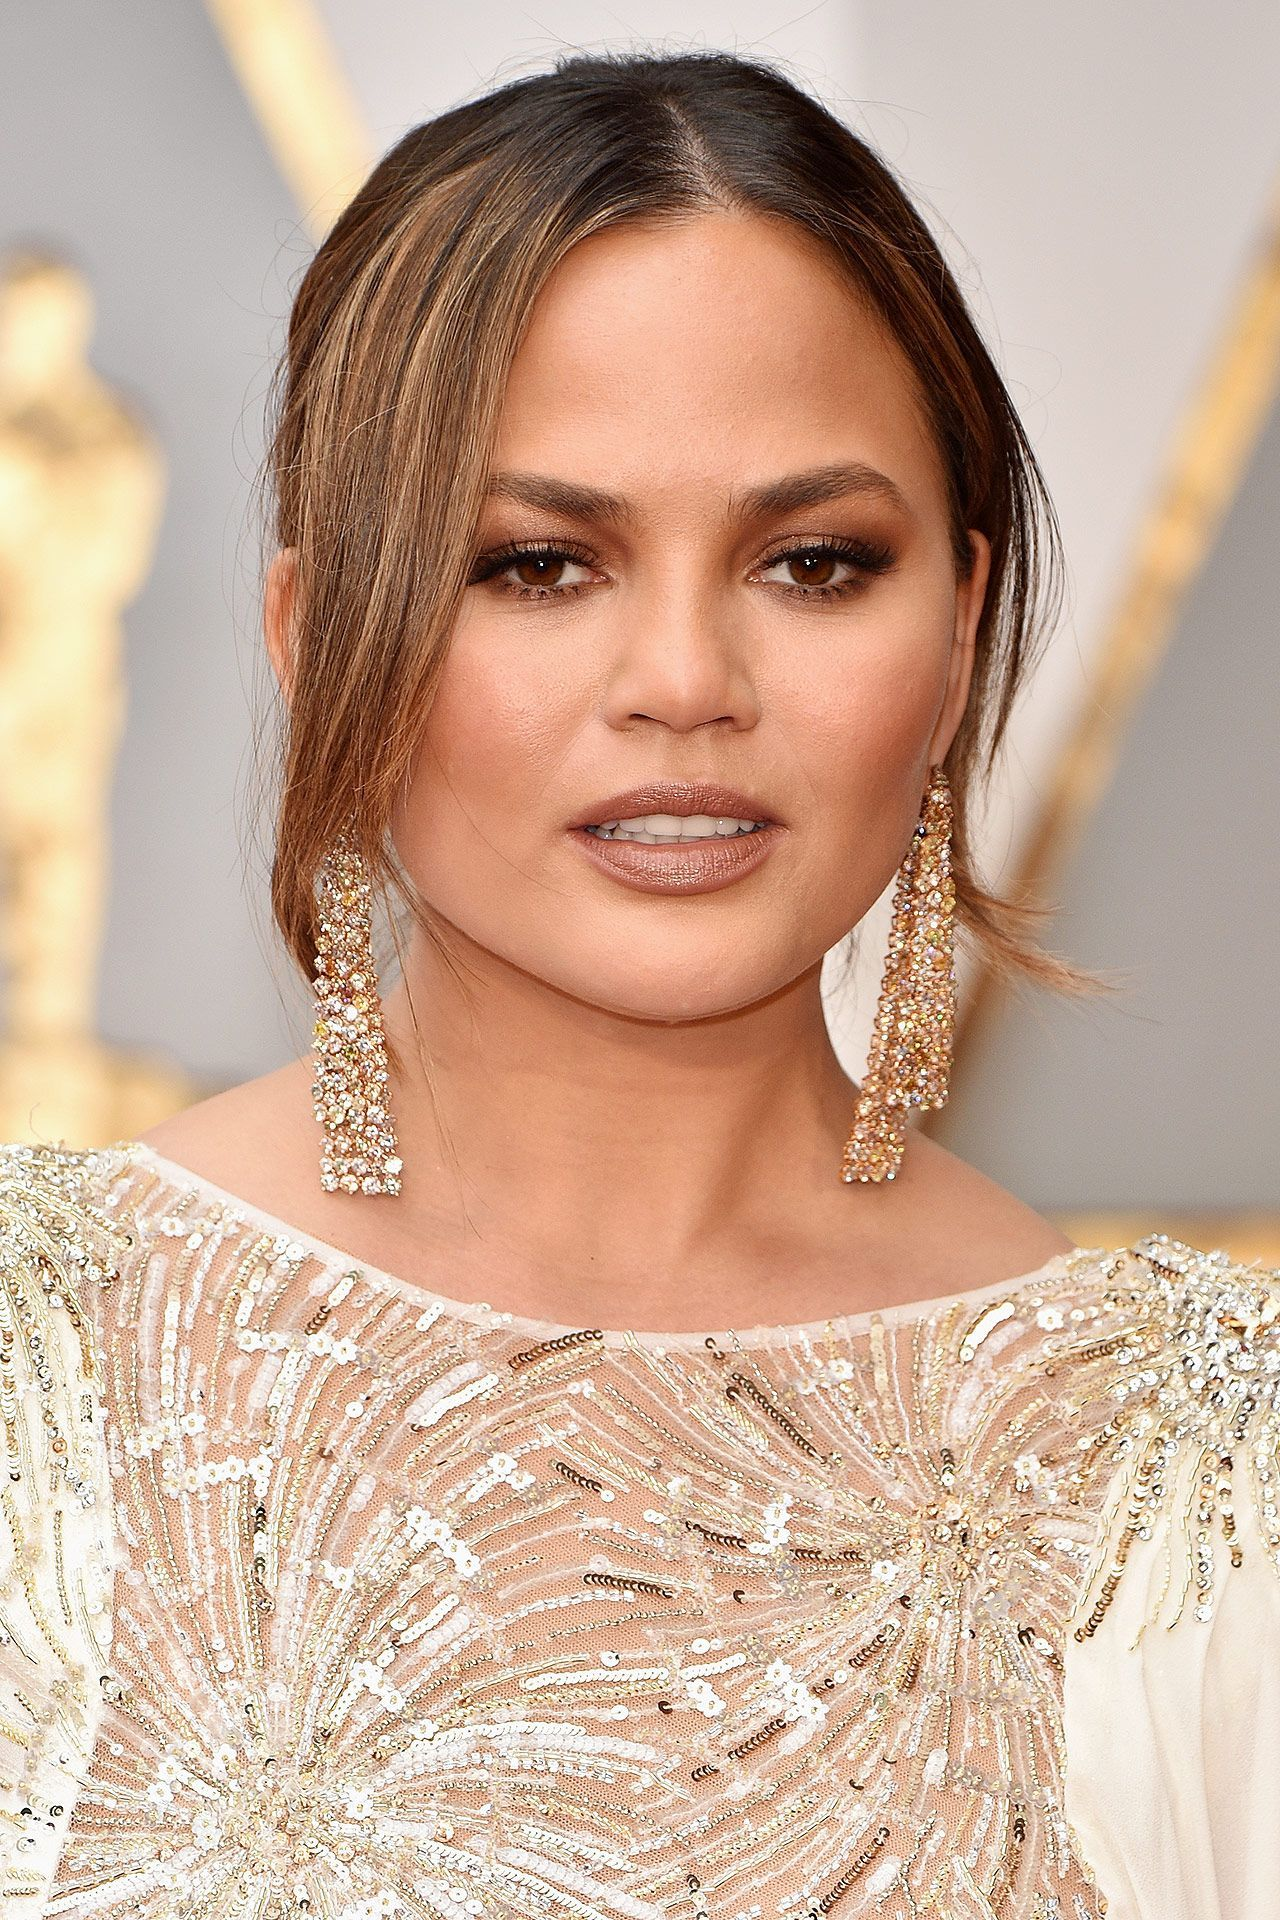 37 Beauty Looks We Want To Steal From The Oscars 2017 And The